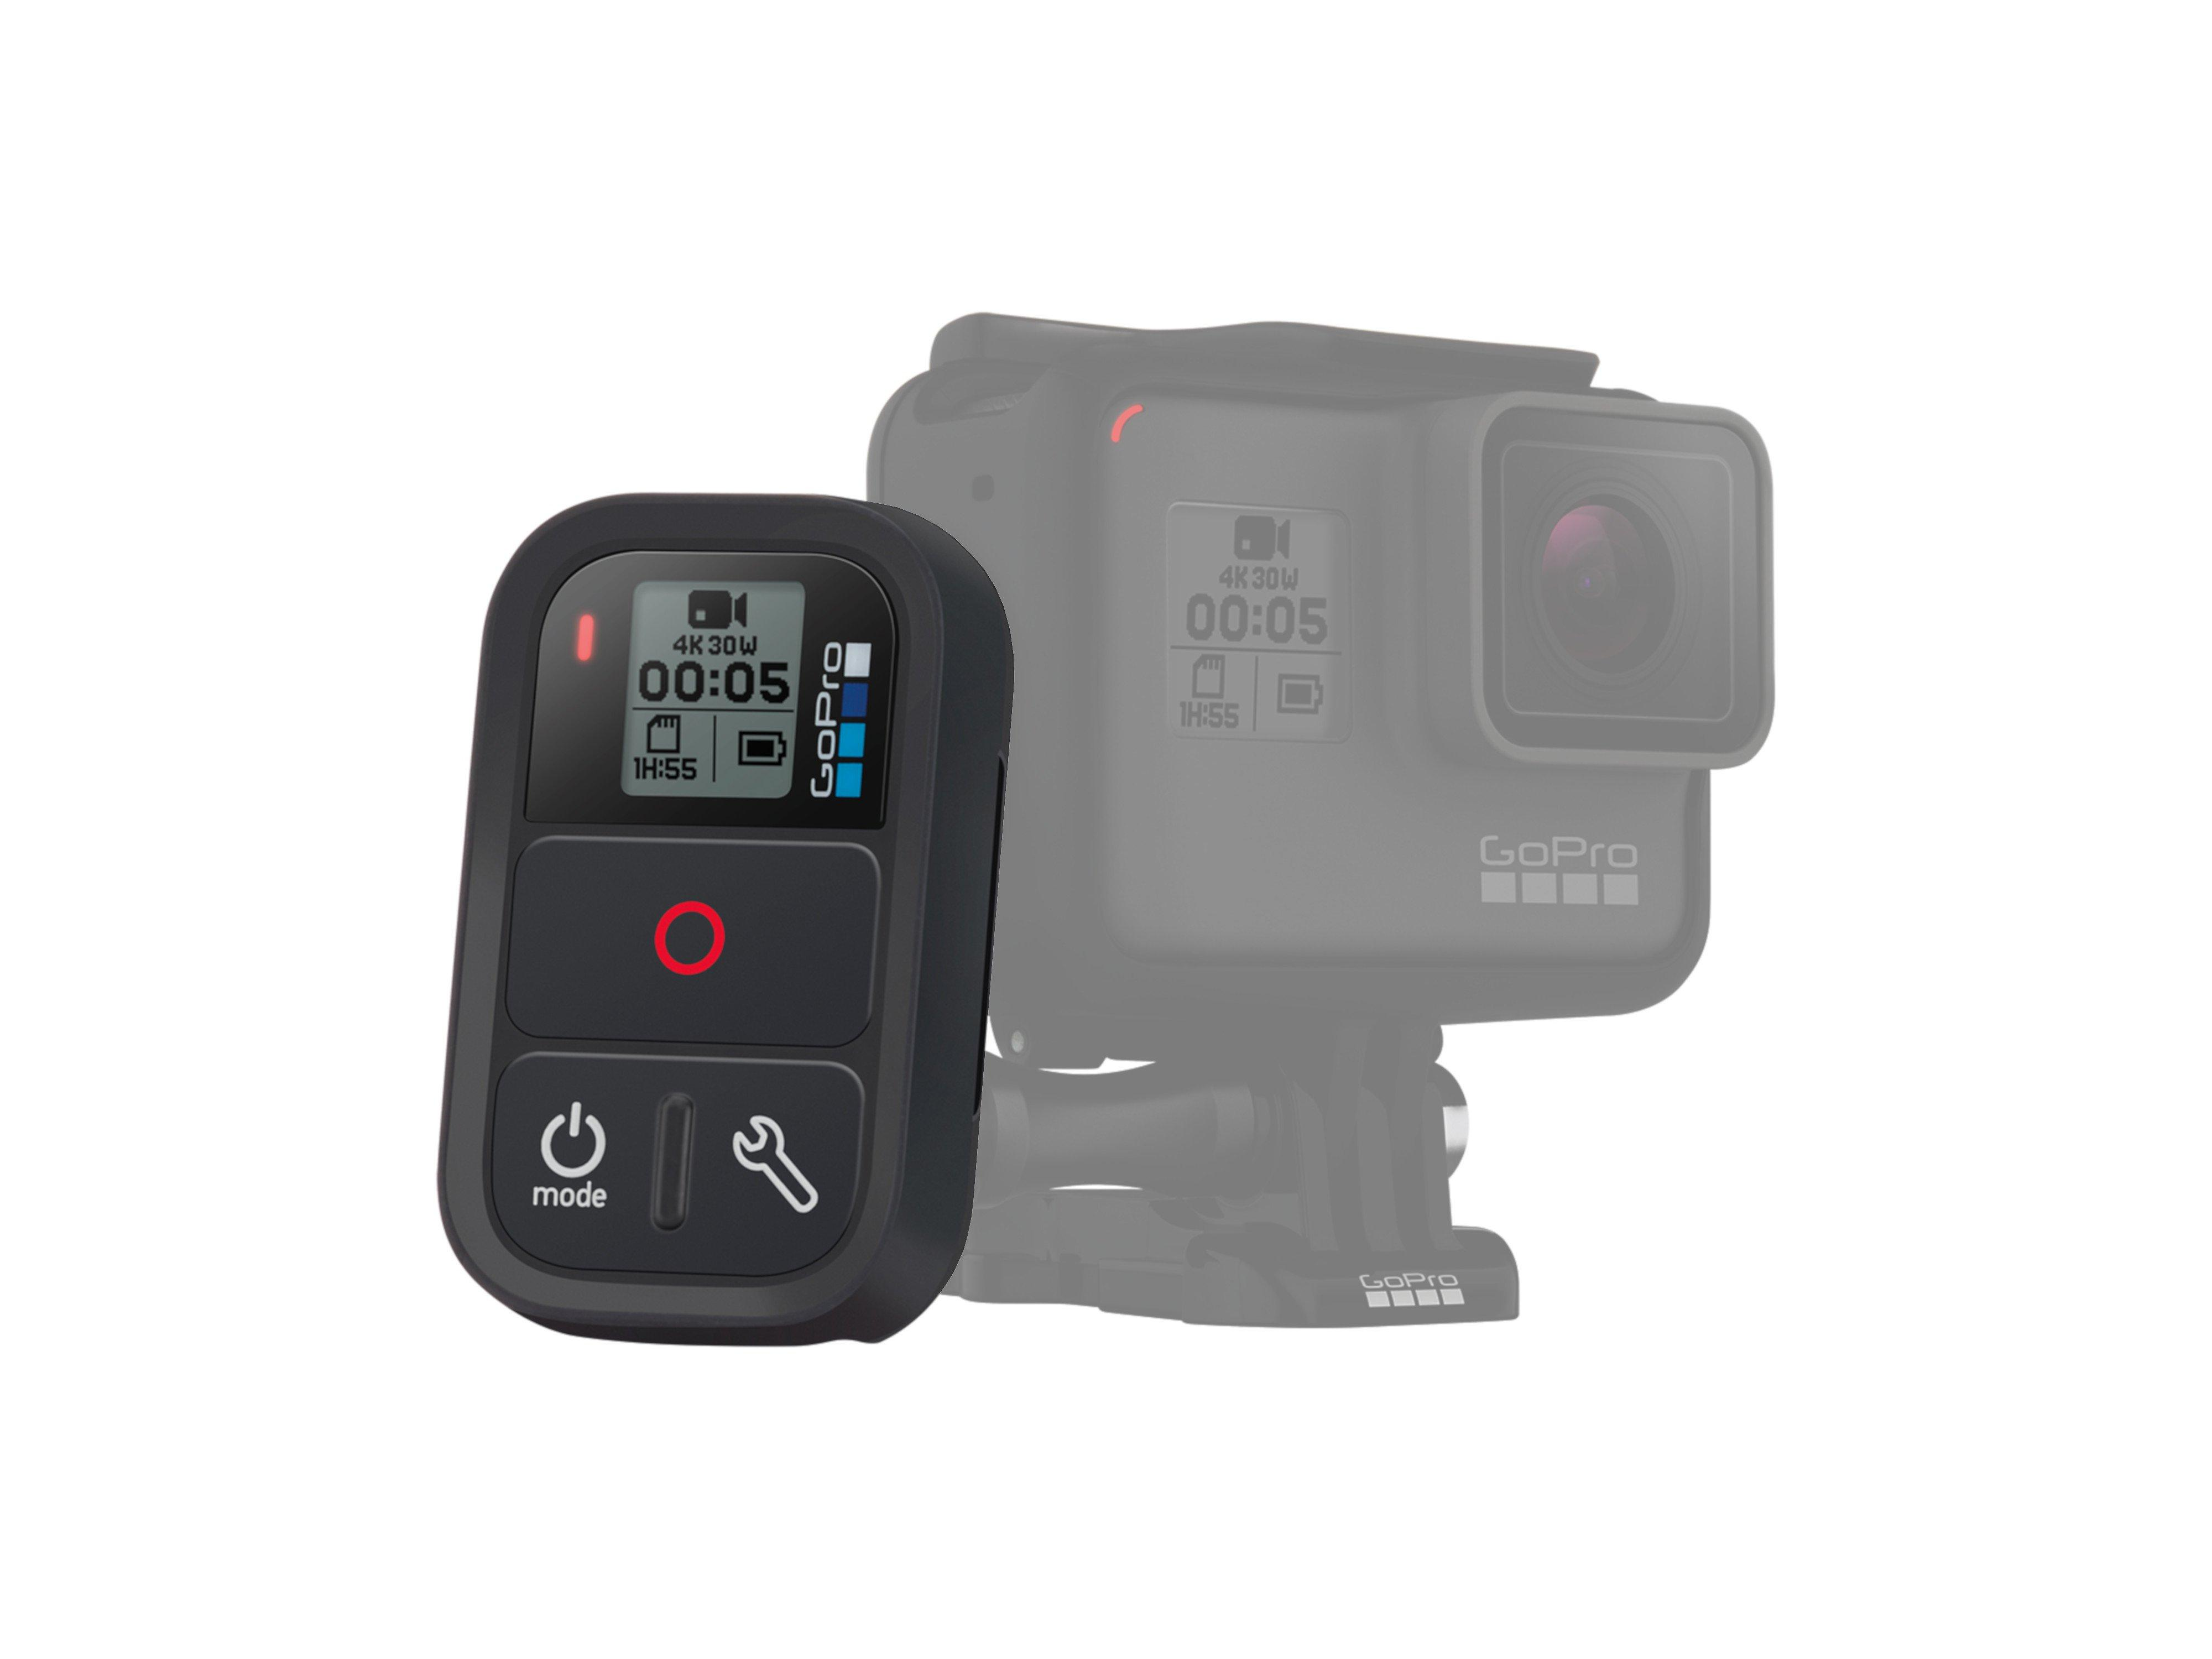 GoPro - Smart Remote Front Remote Hero 5 Black (Ghost)